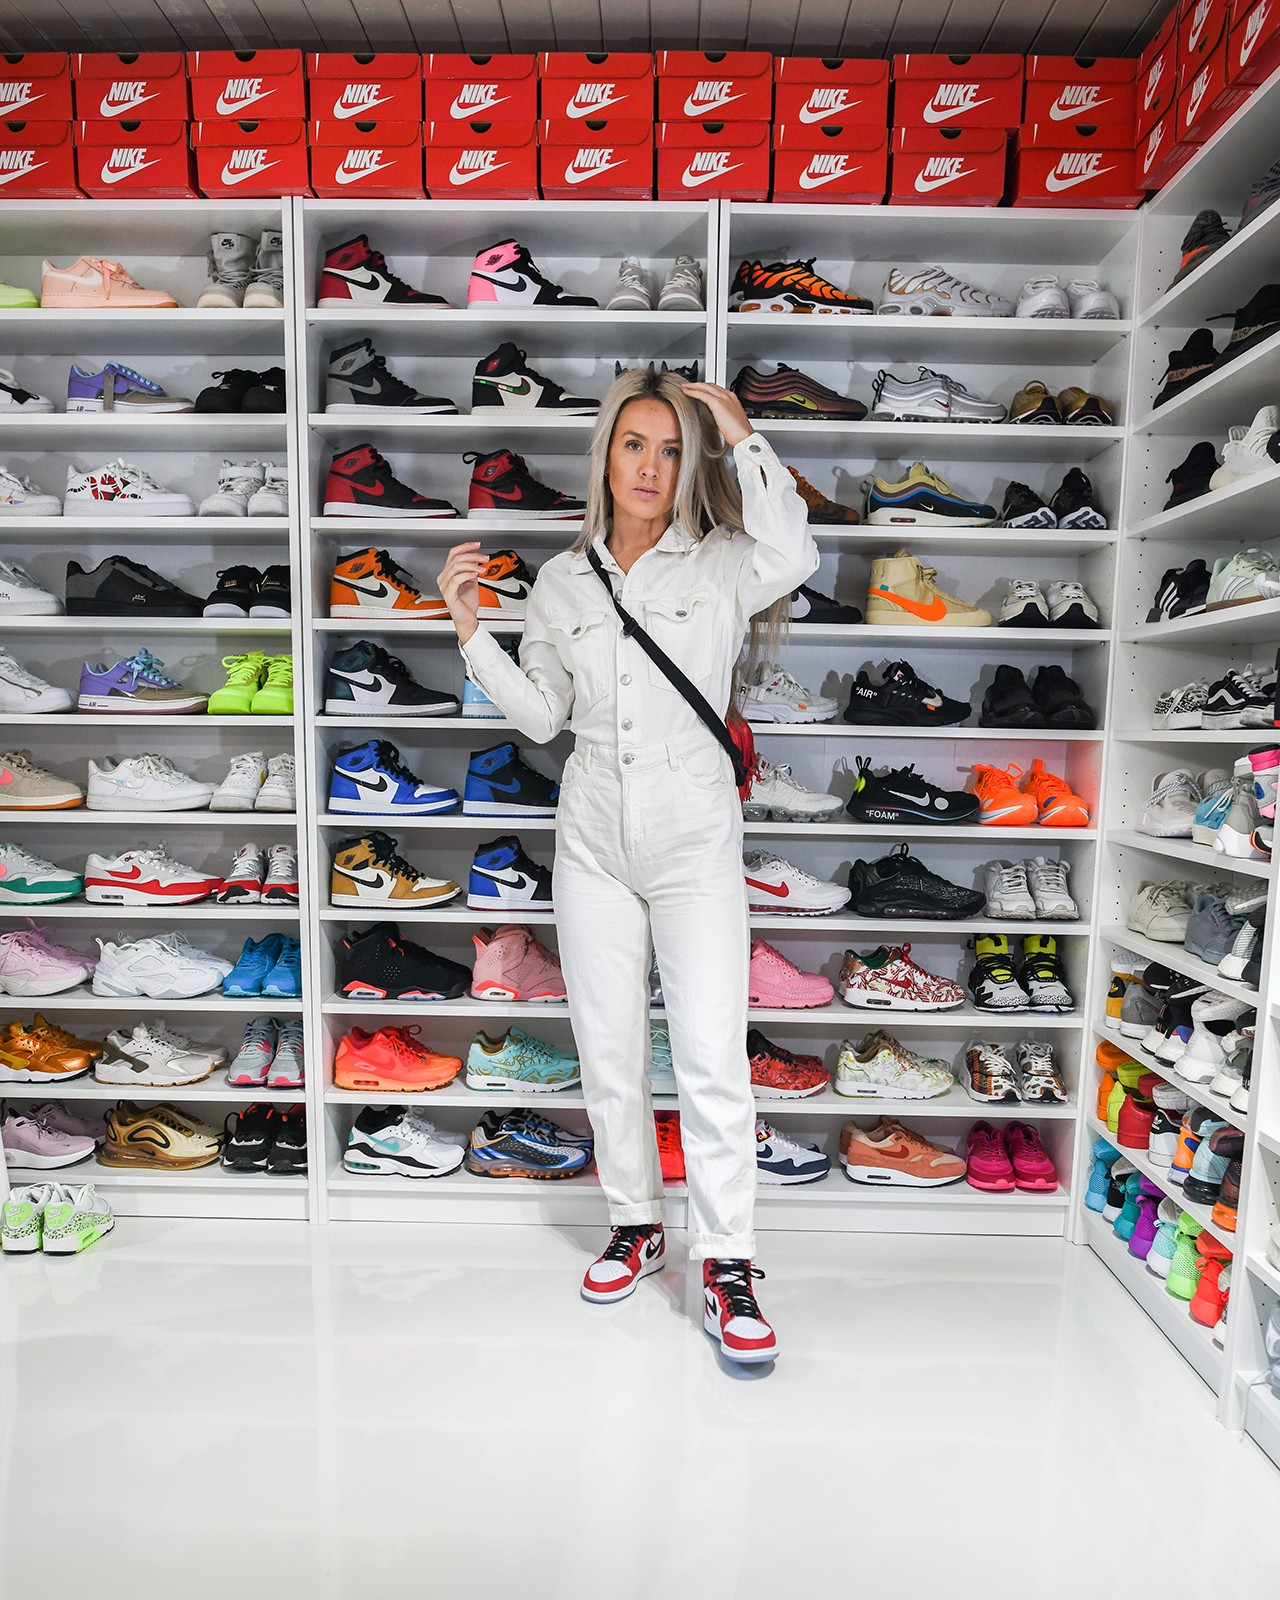 Hanna Helsø Norway Sneaker Collector Stjørdal Nike Air Jordan Sneaker Closet Shoe Footwear Shelf Hypebae Scandinavia Shoes Kicks Trainers